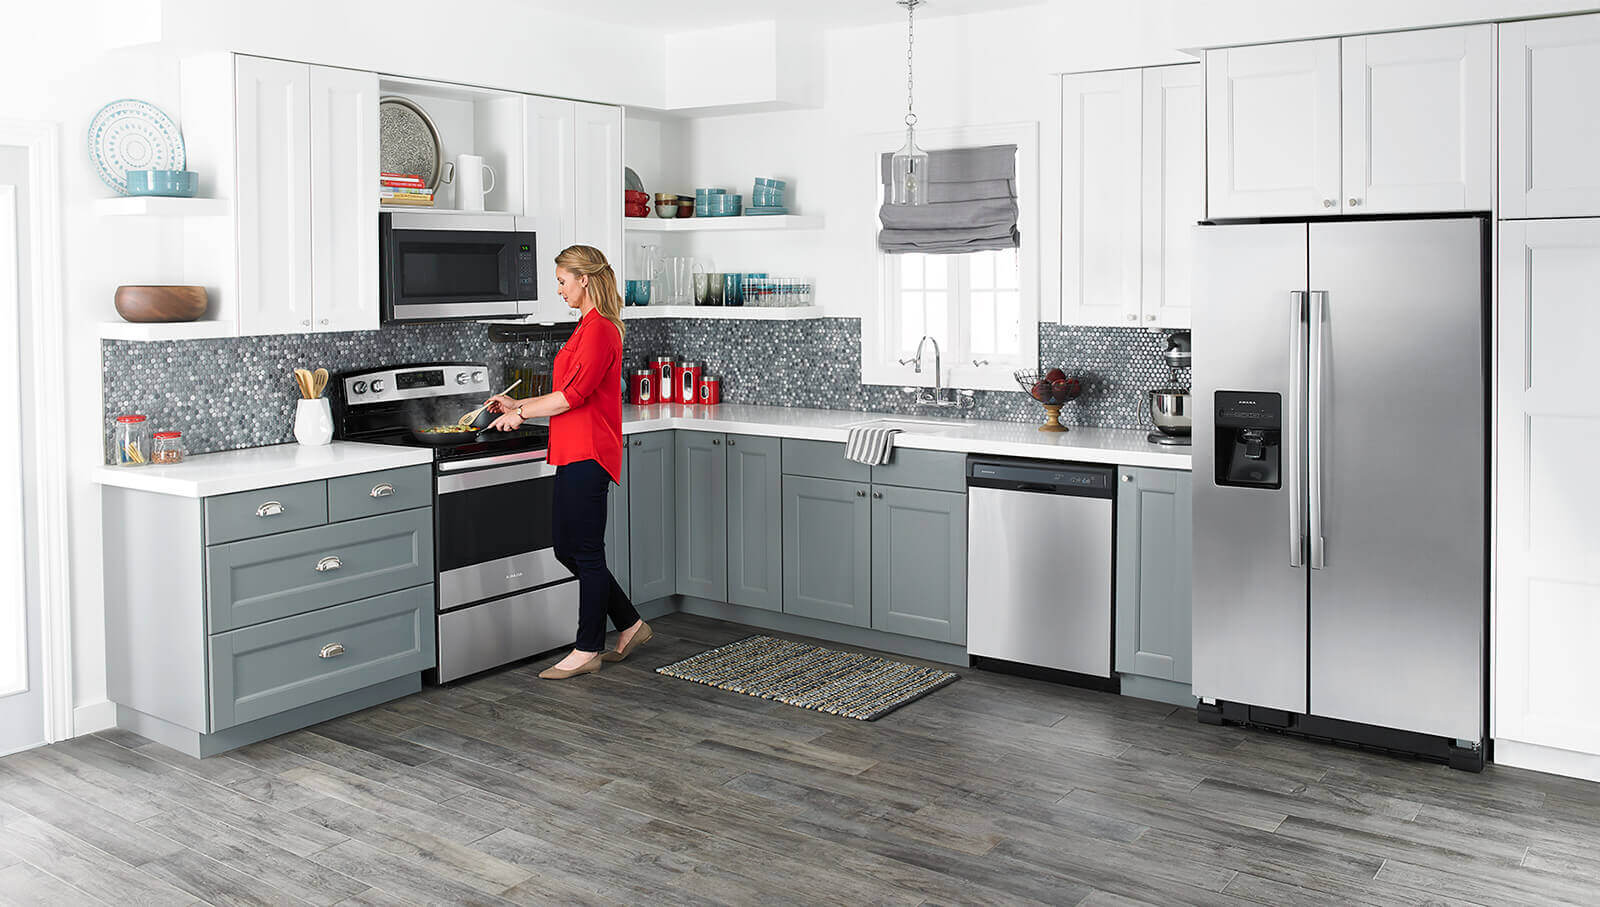 Express appliance kitchen more appliances kitchen cabinets and amana stainless steel kitchen suite workwithnaturefo